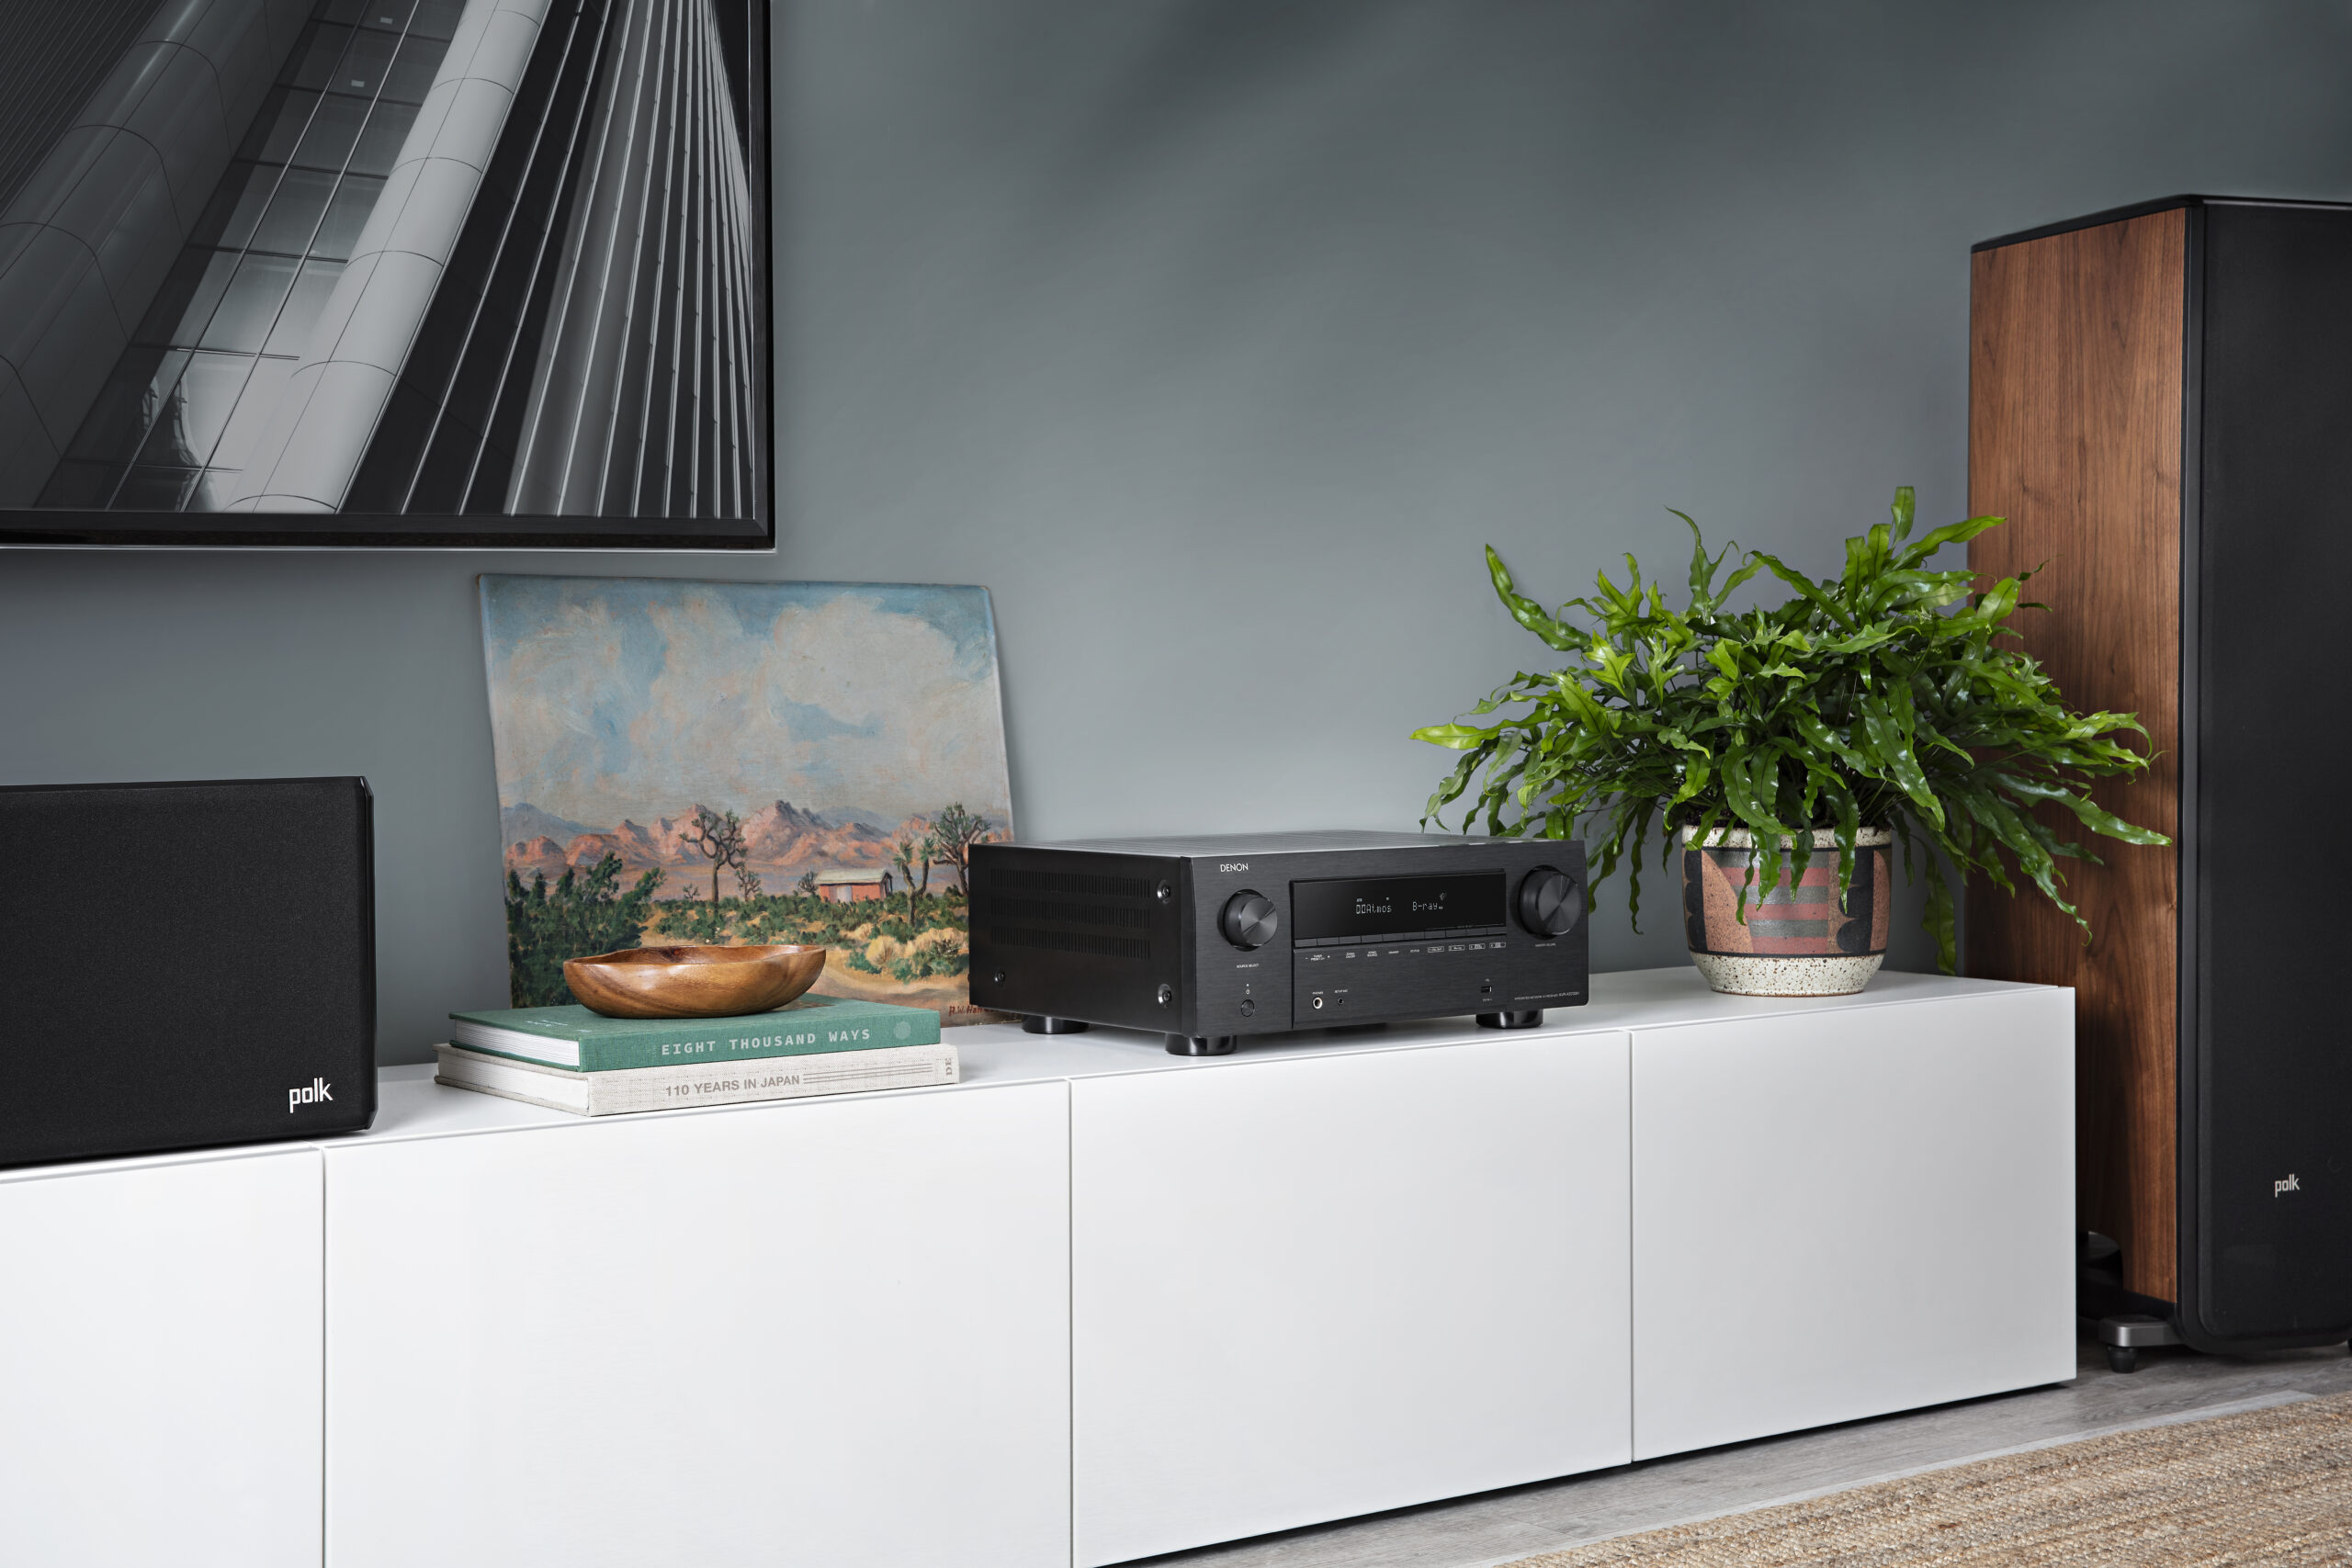 Denon AVC X3700 Lifestyle1 E2 E1C scaled Denon Launches Five New Home Theatre AV Receivers